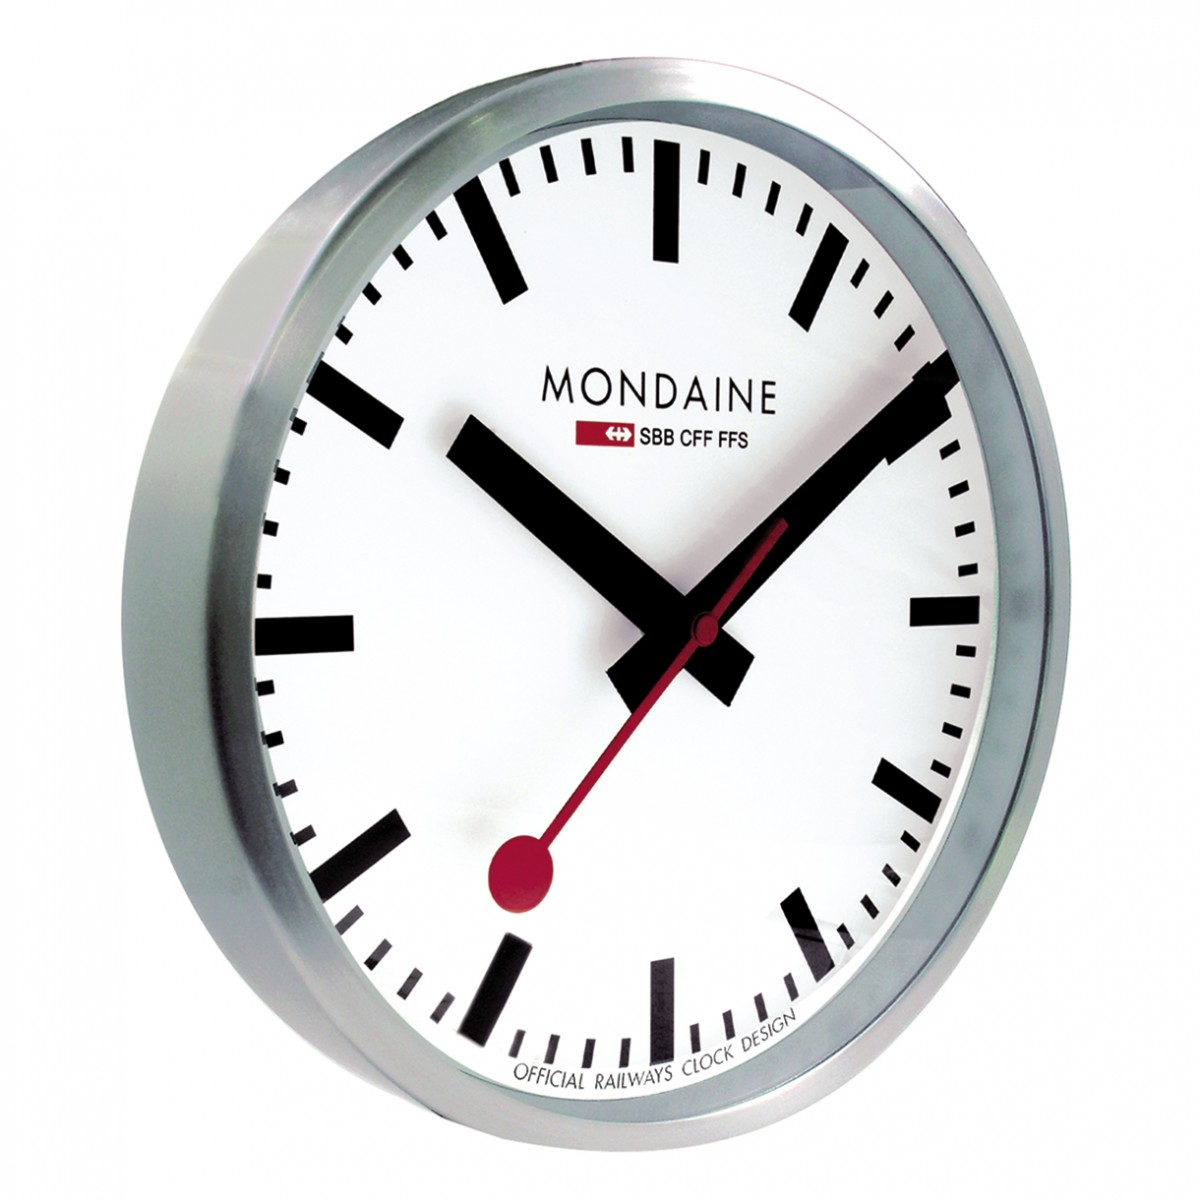 Mondaine clocks crown jewellery - Swiss railway wall clock ...